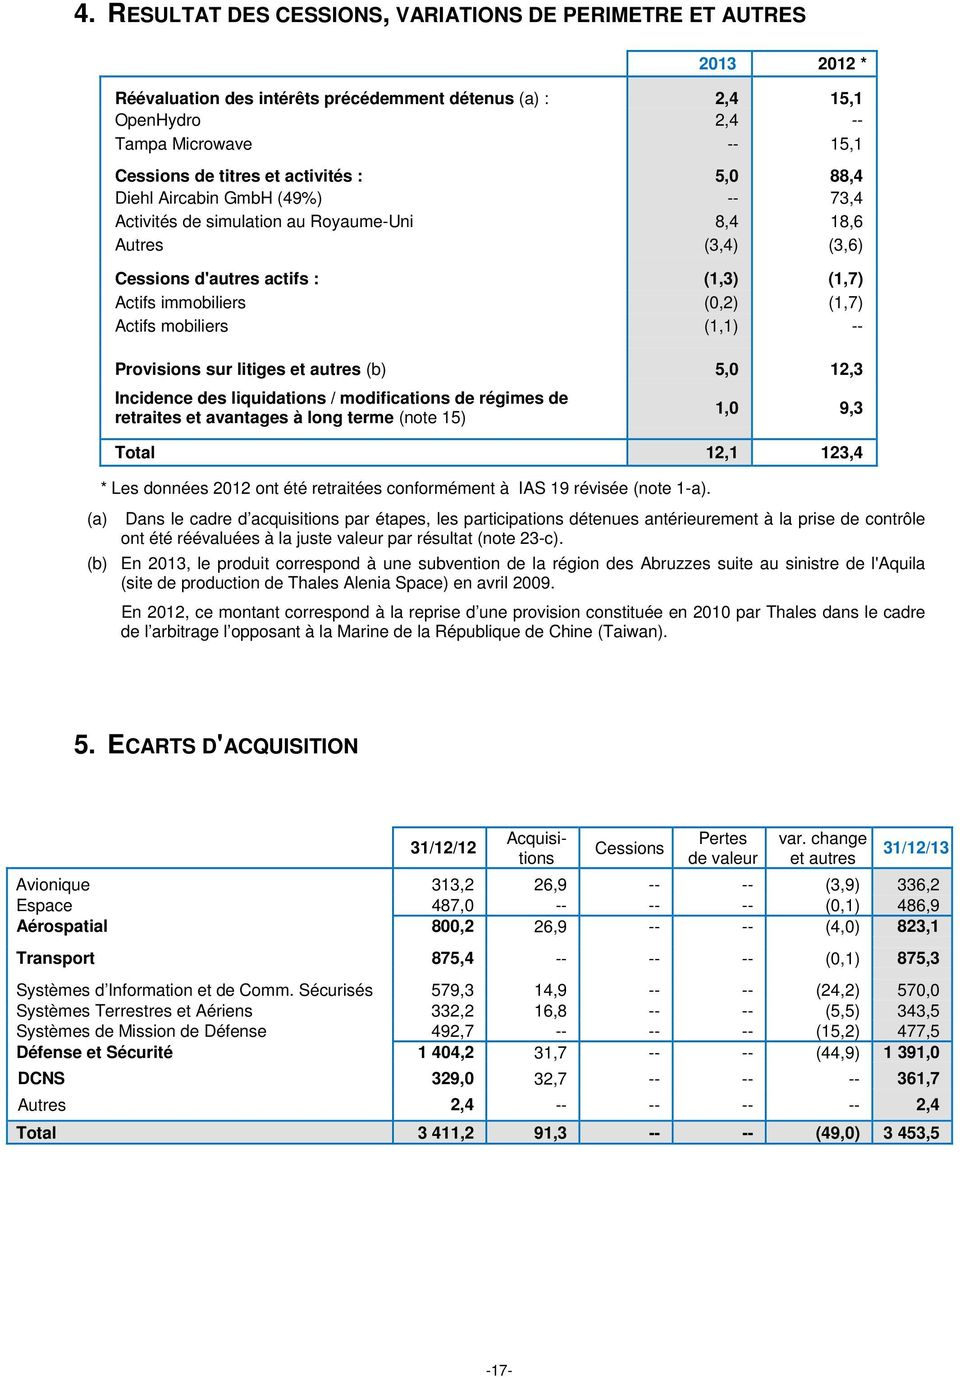 mobiliers (1,1) -- Provisions sur litiges et autres (b) 5,0 12,3 Incidence des liquidations / modifications de régimes de retraites et avantages à long terme (note 15) 1,0 9,3 (a) Total 12,1 123,4 *